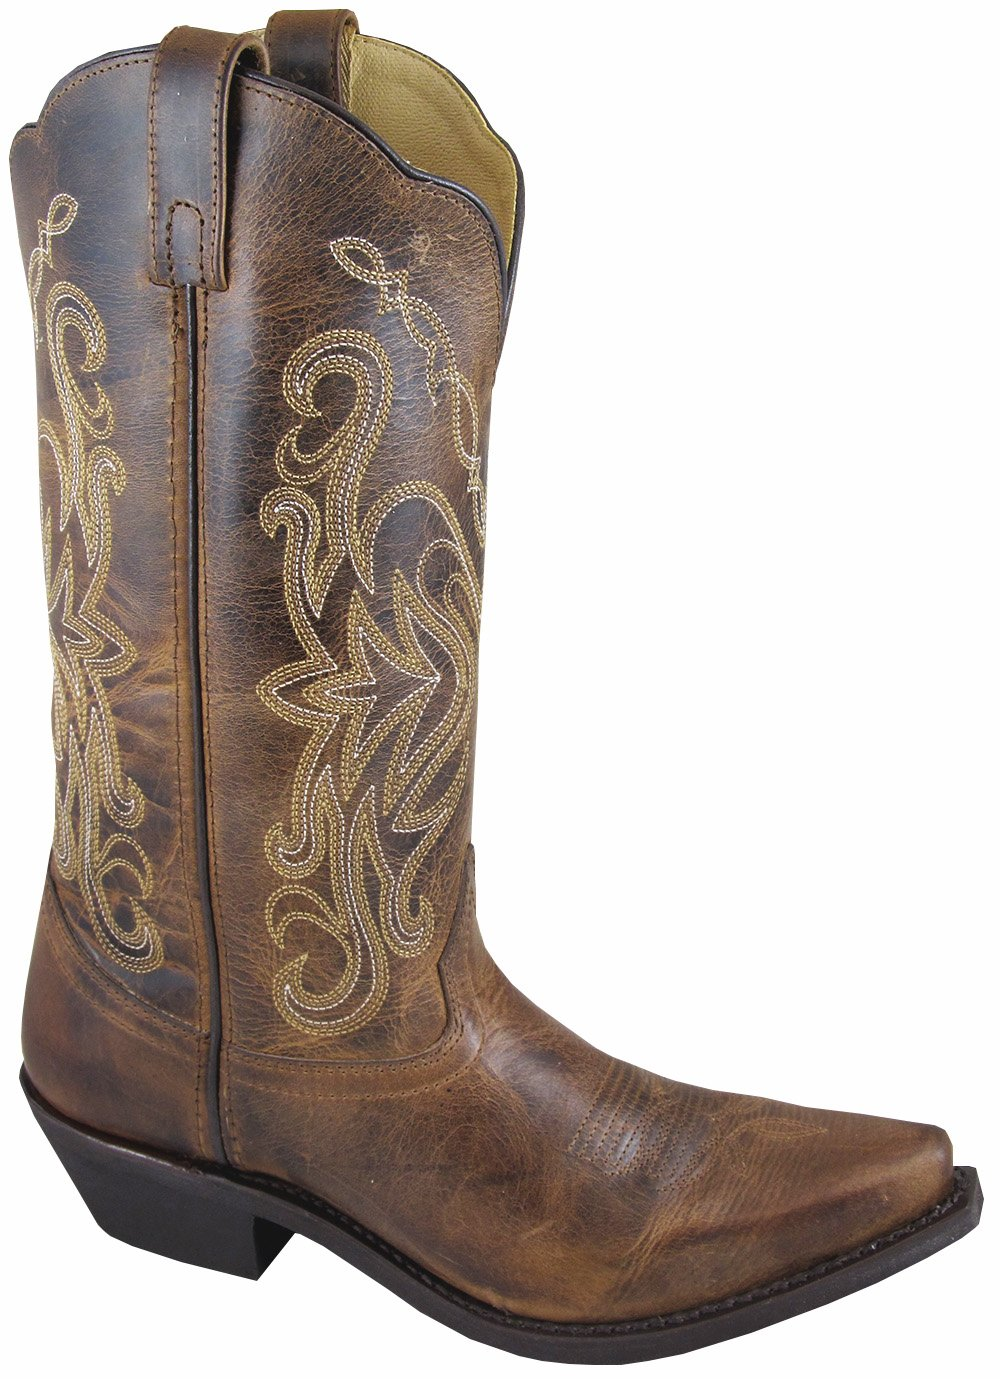 Smoky Mountain Boots Women's Western Snip Toe Cowboy Madison Distressed Brown, 6.5M